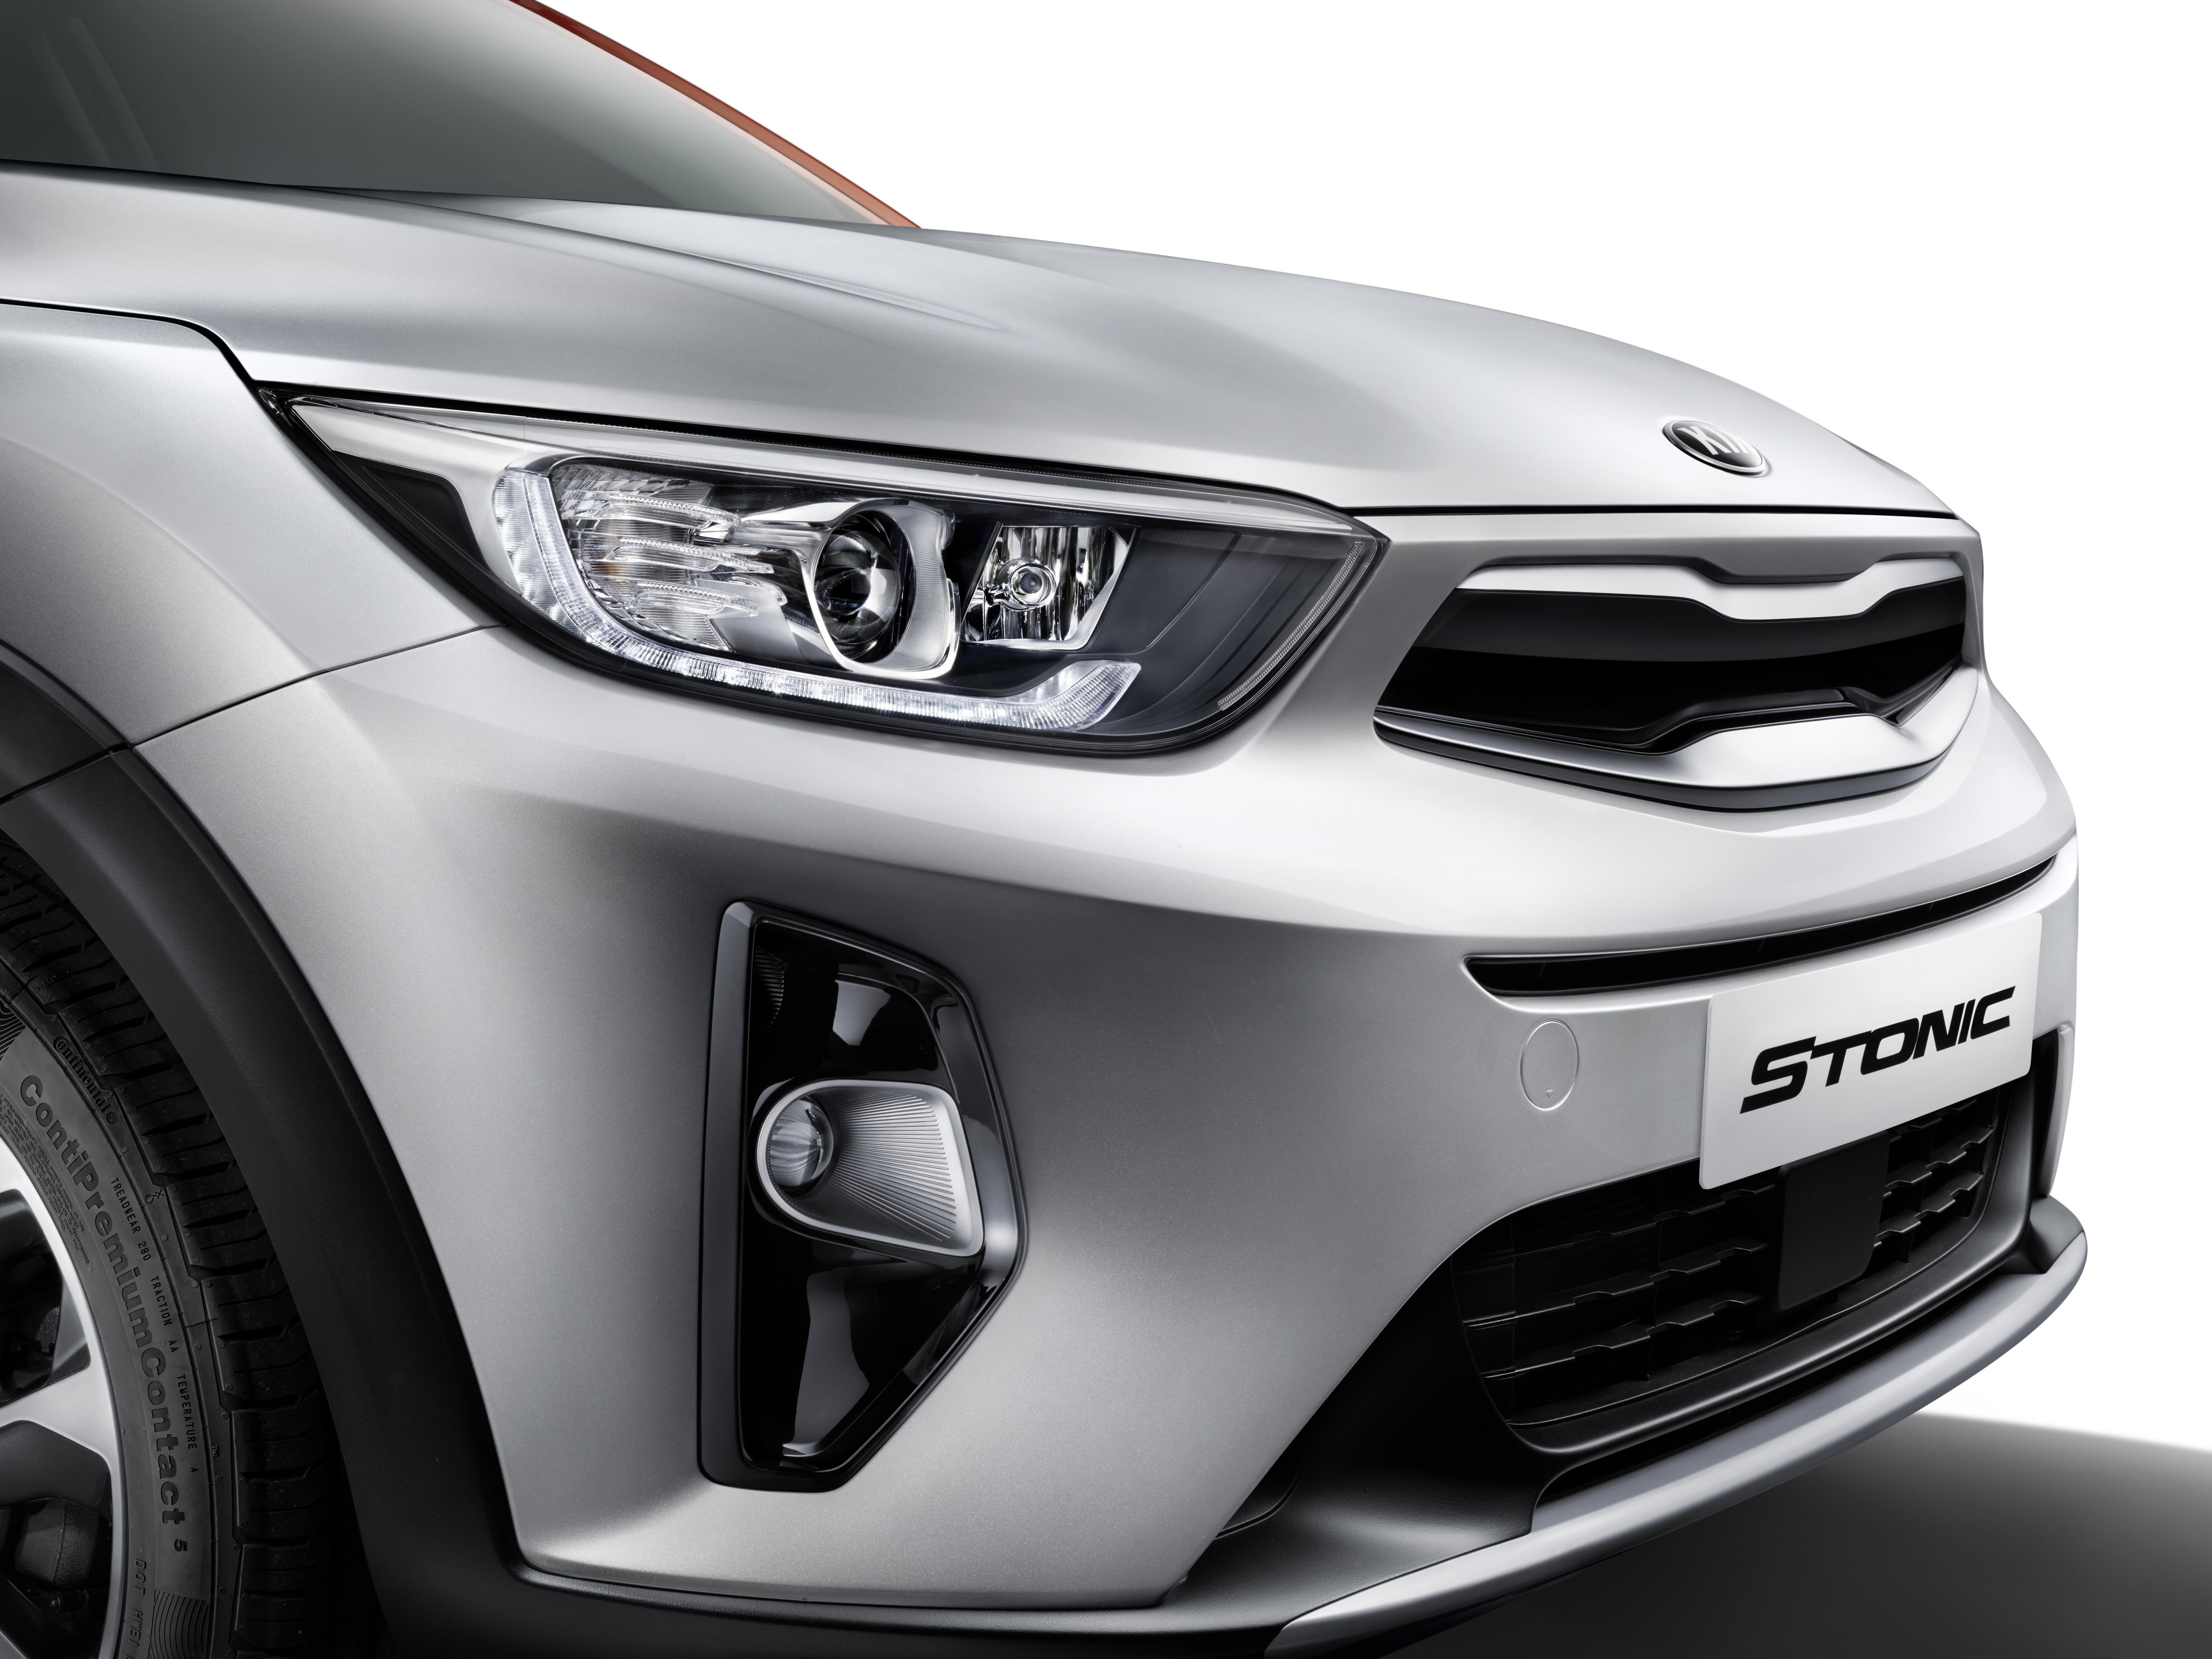 2018 kia stonic goes official 1 6 crdi confirmed for european market autoevolution. Black Bedroom Furniture Sets. Home Design Ideas